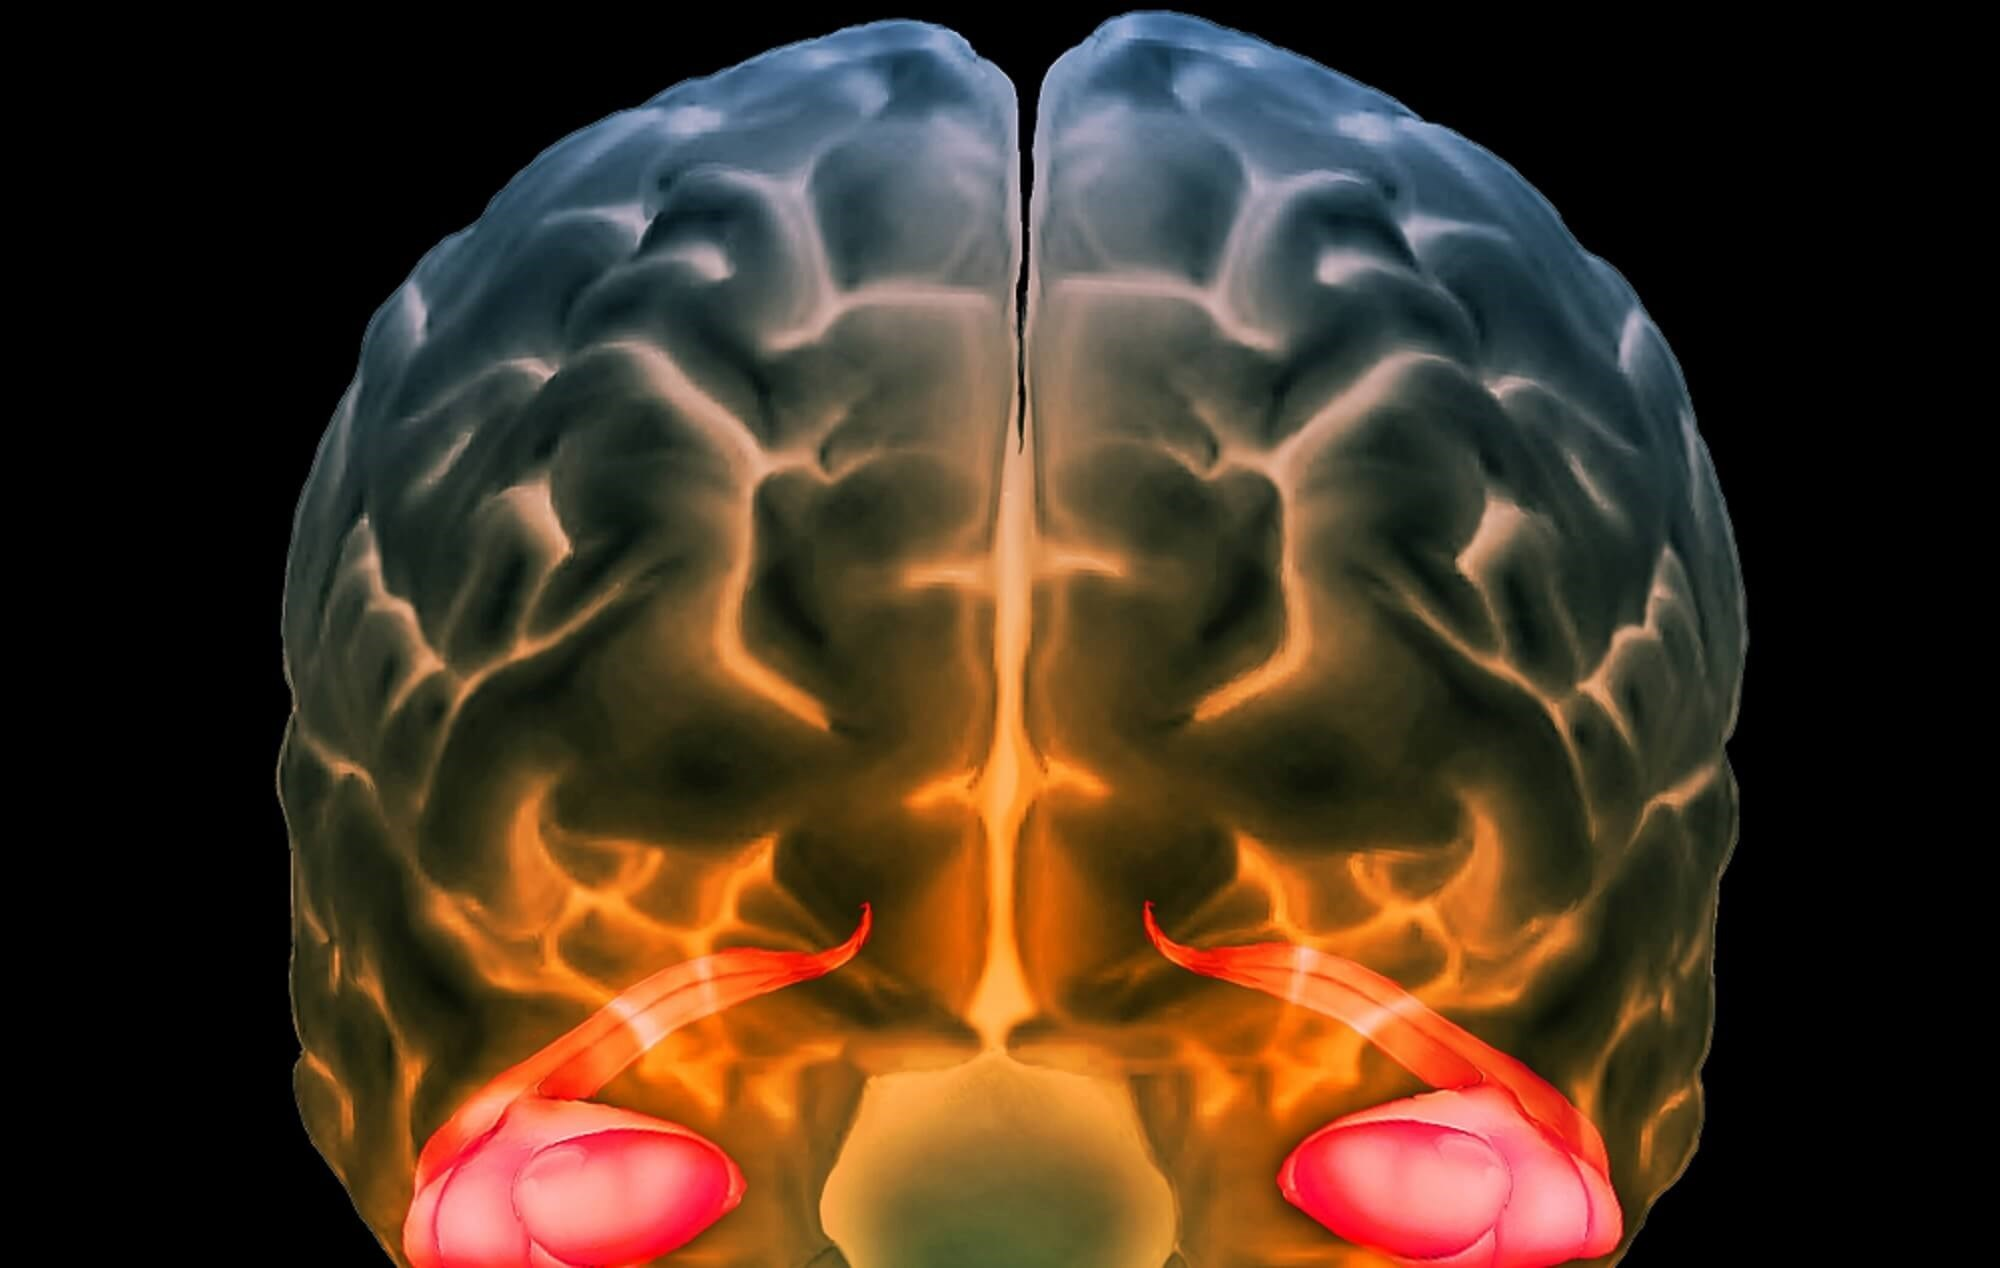 Inflammation appears to be associated with reductions in hippocampal and gray matter volumes in older patients with bipolar I disorder. <i>Credit: ISM / SOVEREIGN - ISM</i>